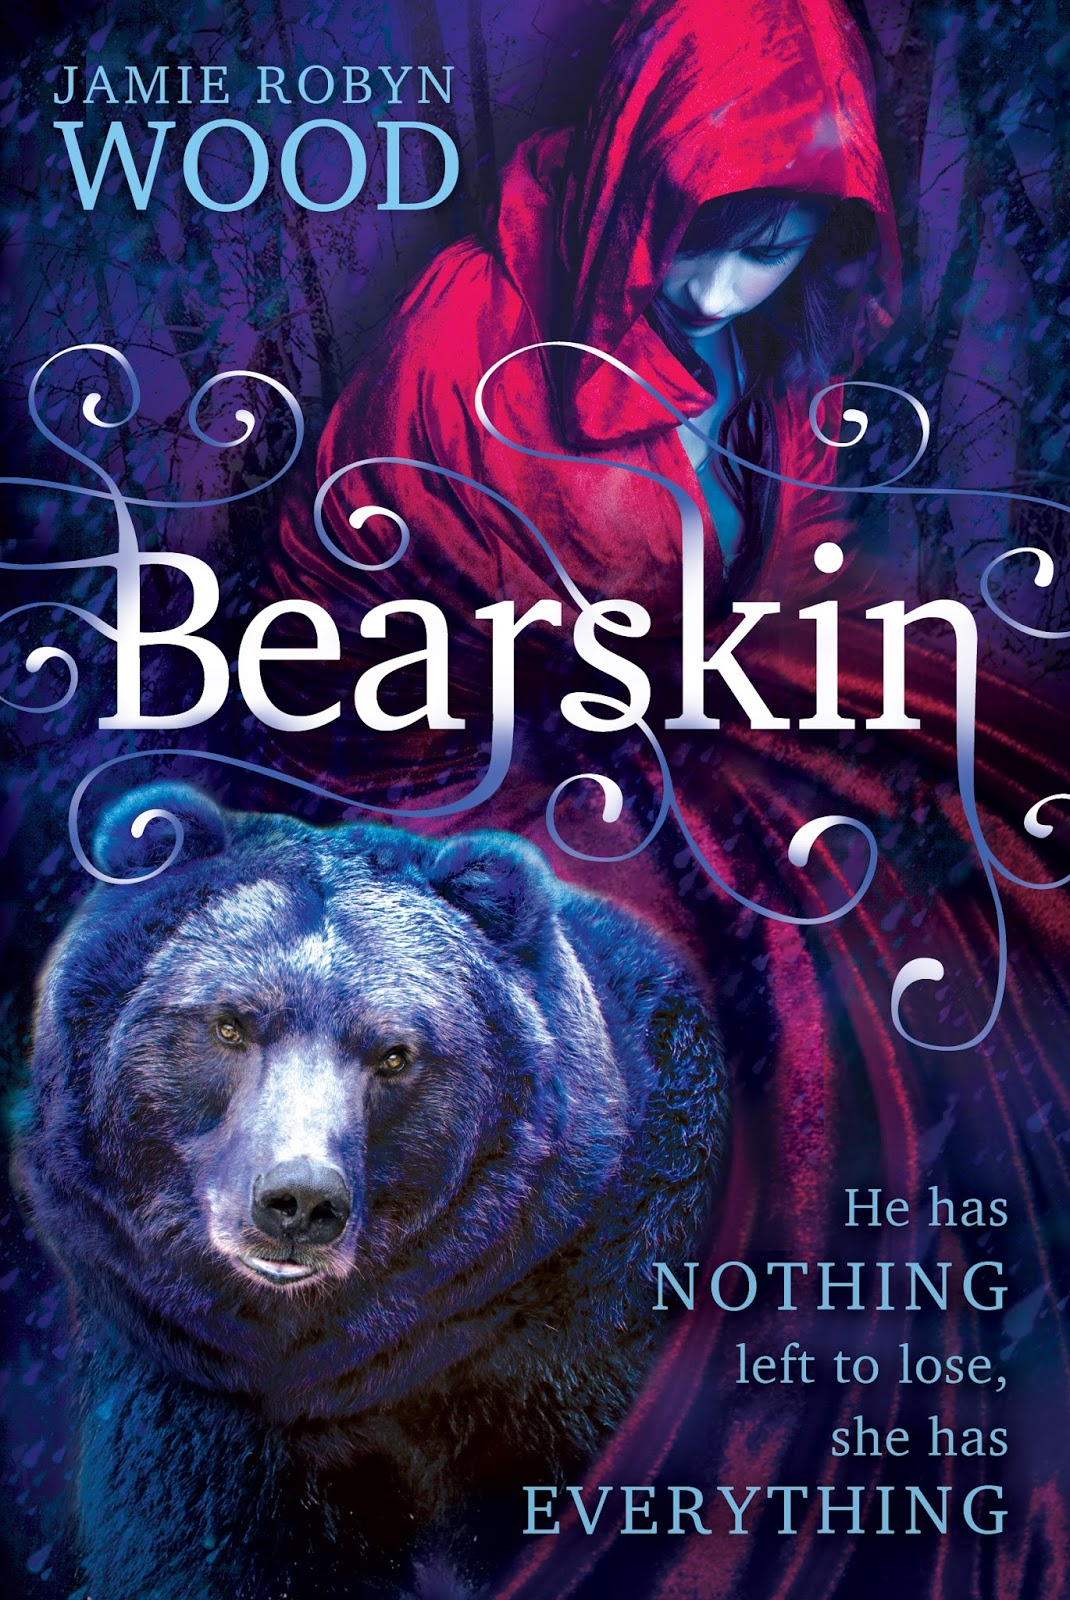 Feedback On The First Dark Divine Novel That I Am Pleased To Return The  Favor In A Small Part By Telling You All About Her Debut Ya Novel, Bearskin